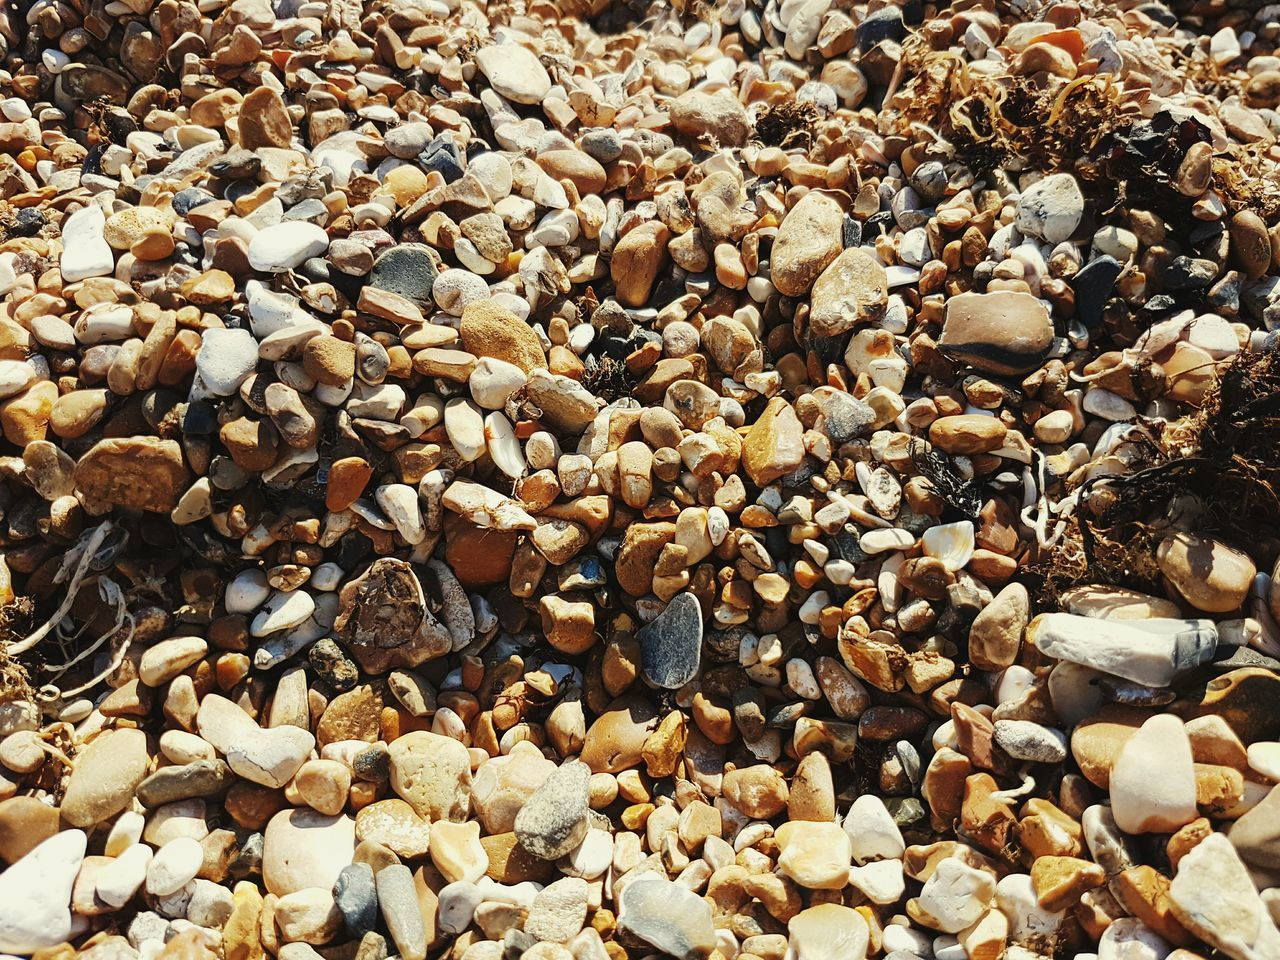 Abundance Large Group Of Objects Full Frame Backgrounds No People Outdoors Day Beauty In Nature Beach Pebbles